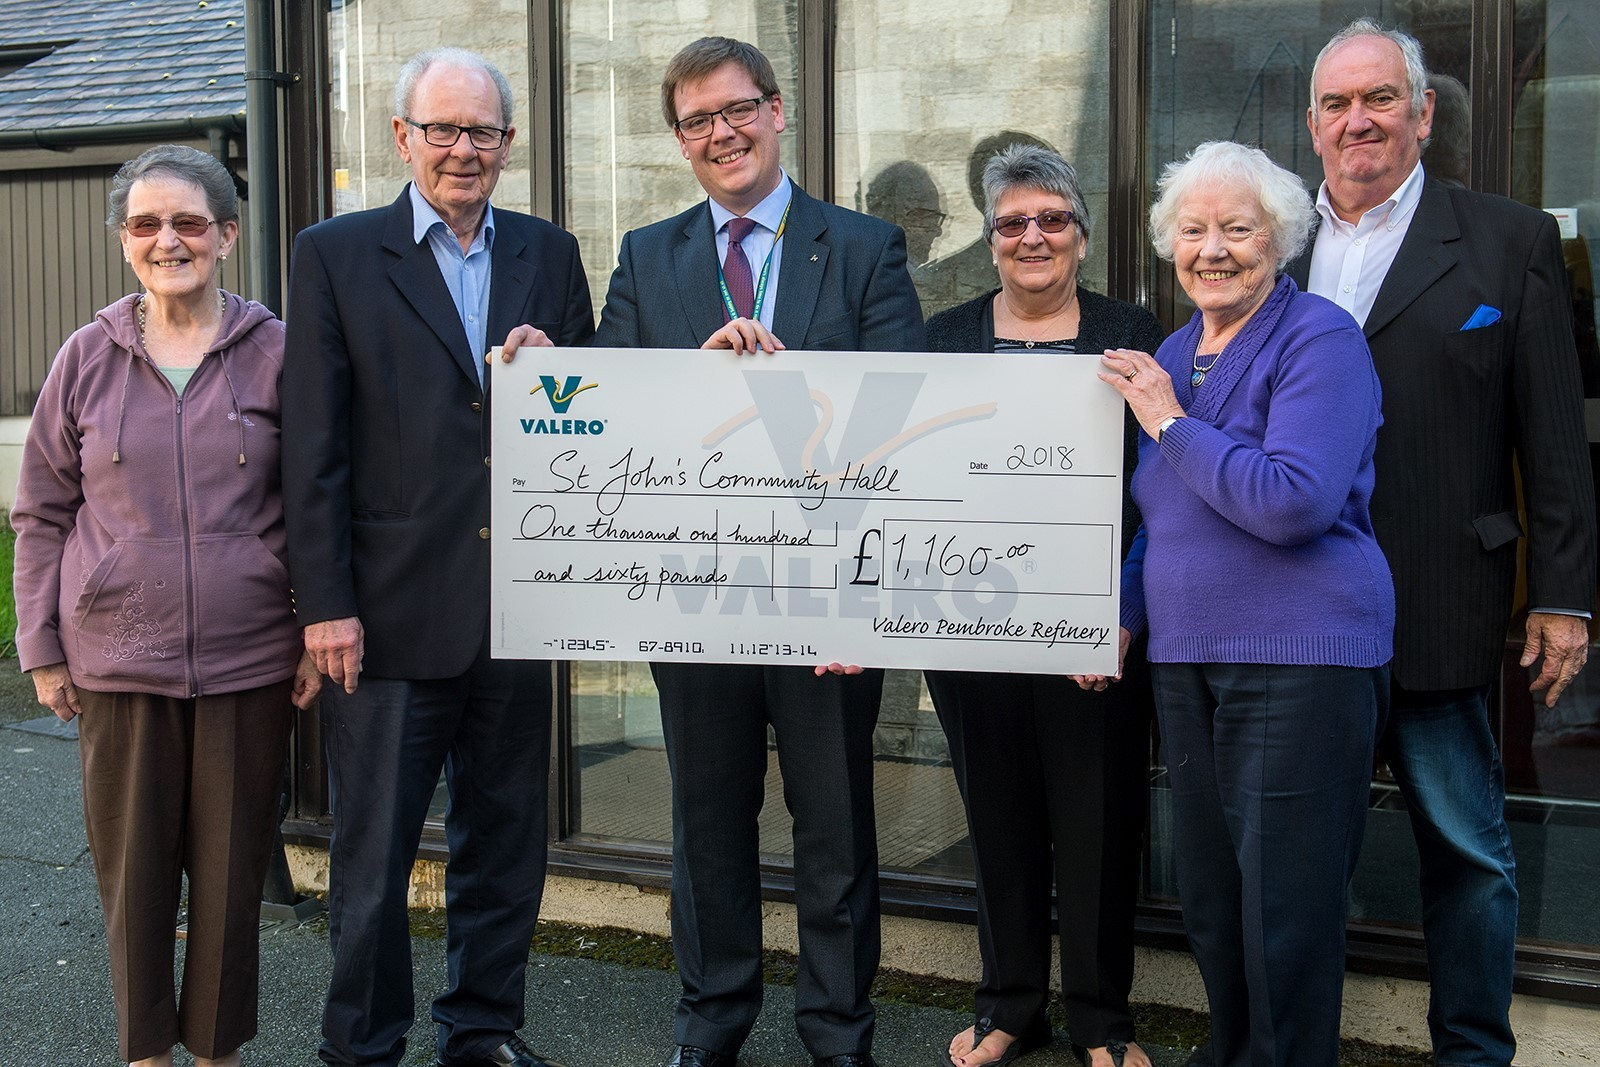 Valero's William James is pictured presenting a cheque to members of St John's Community Hall in Pembroke Dock.